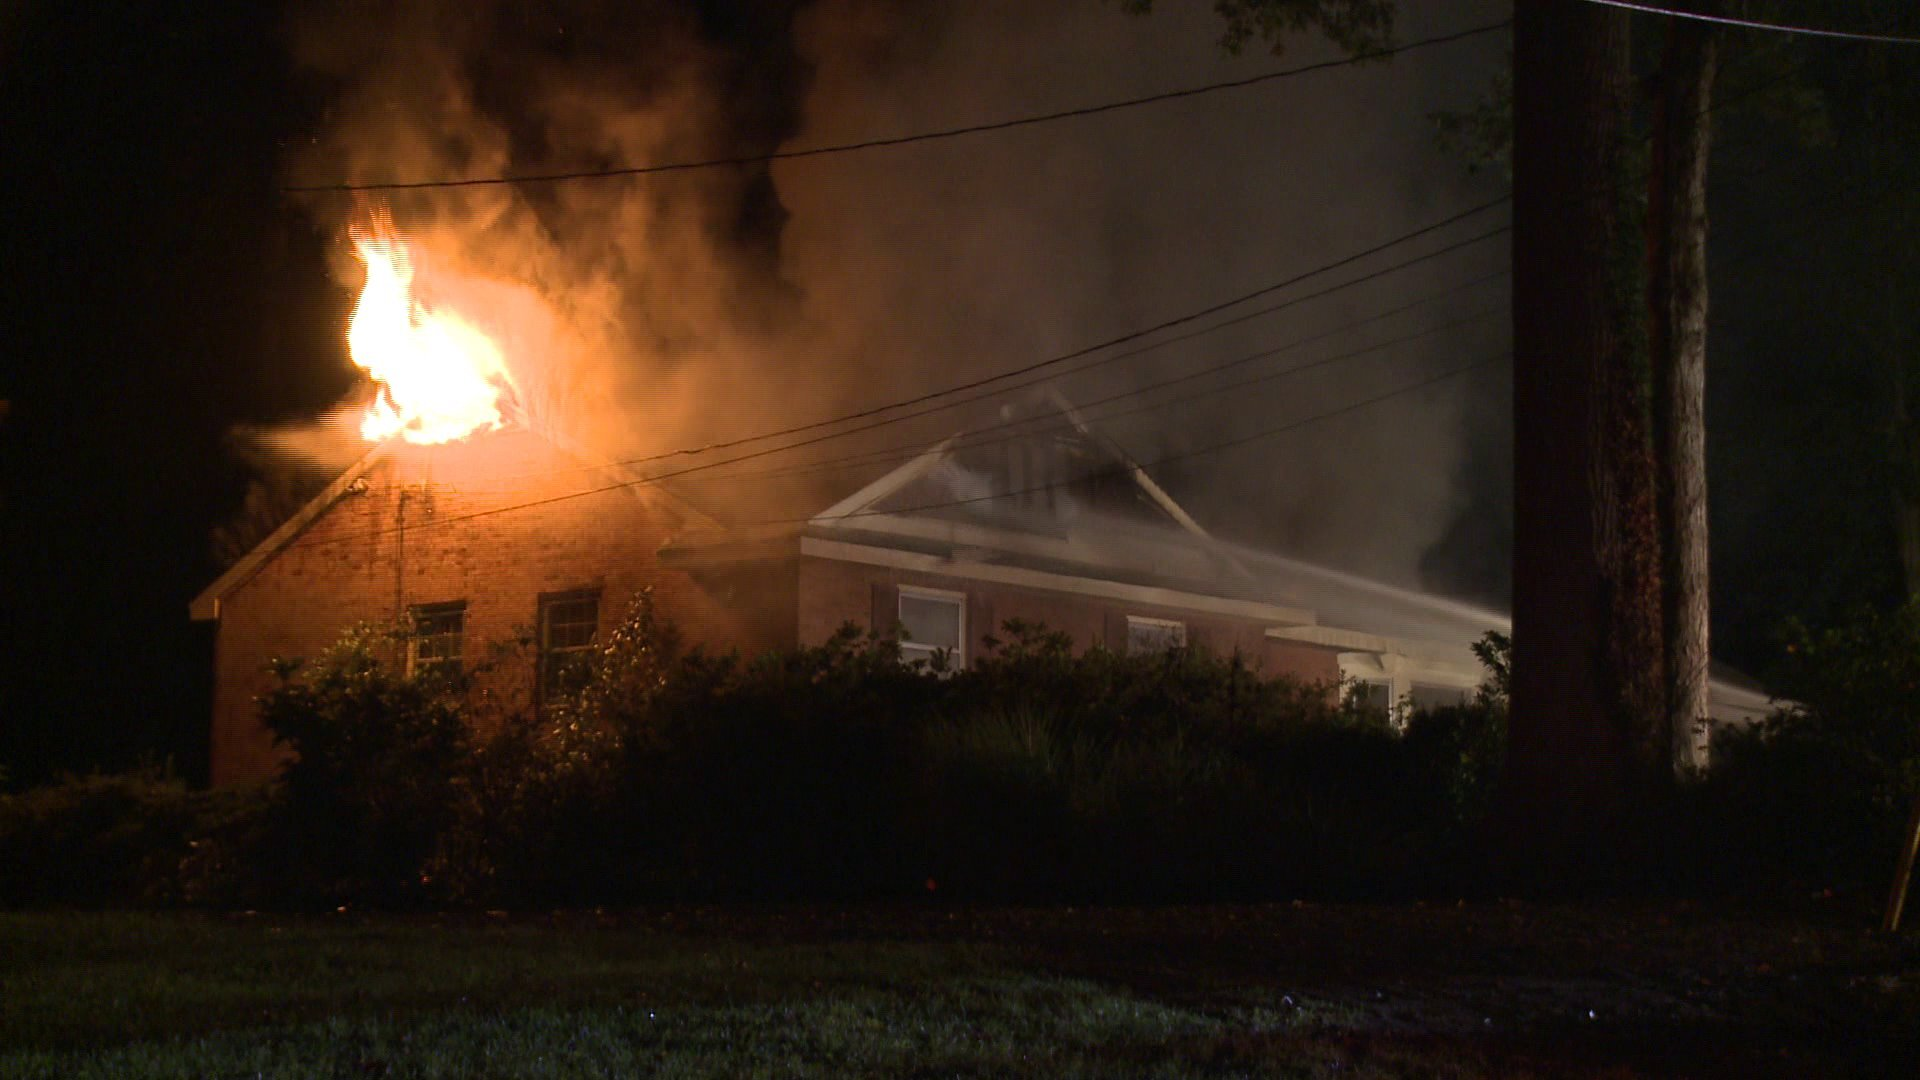 Photos: 76-year-old dies after food left on stove sparks Chesterfield housefire